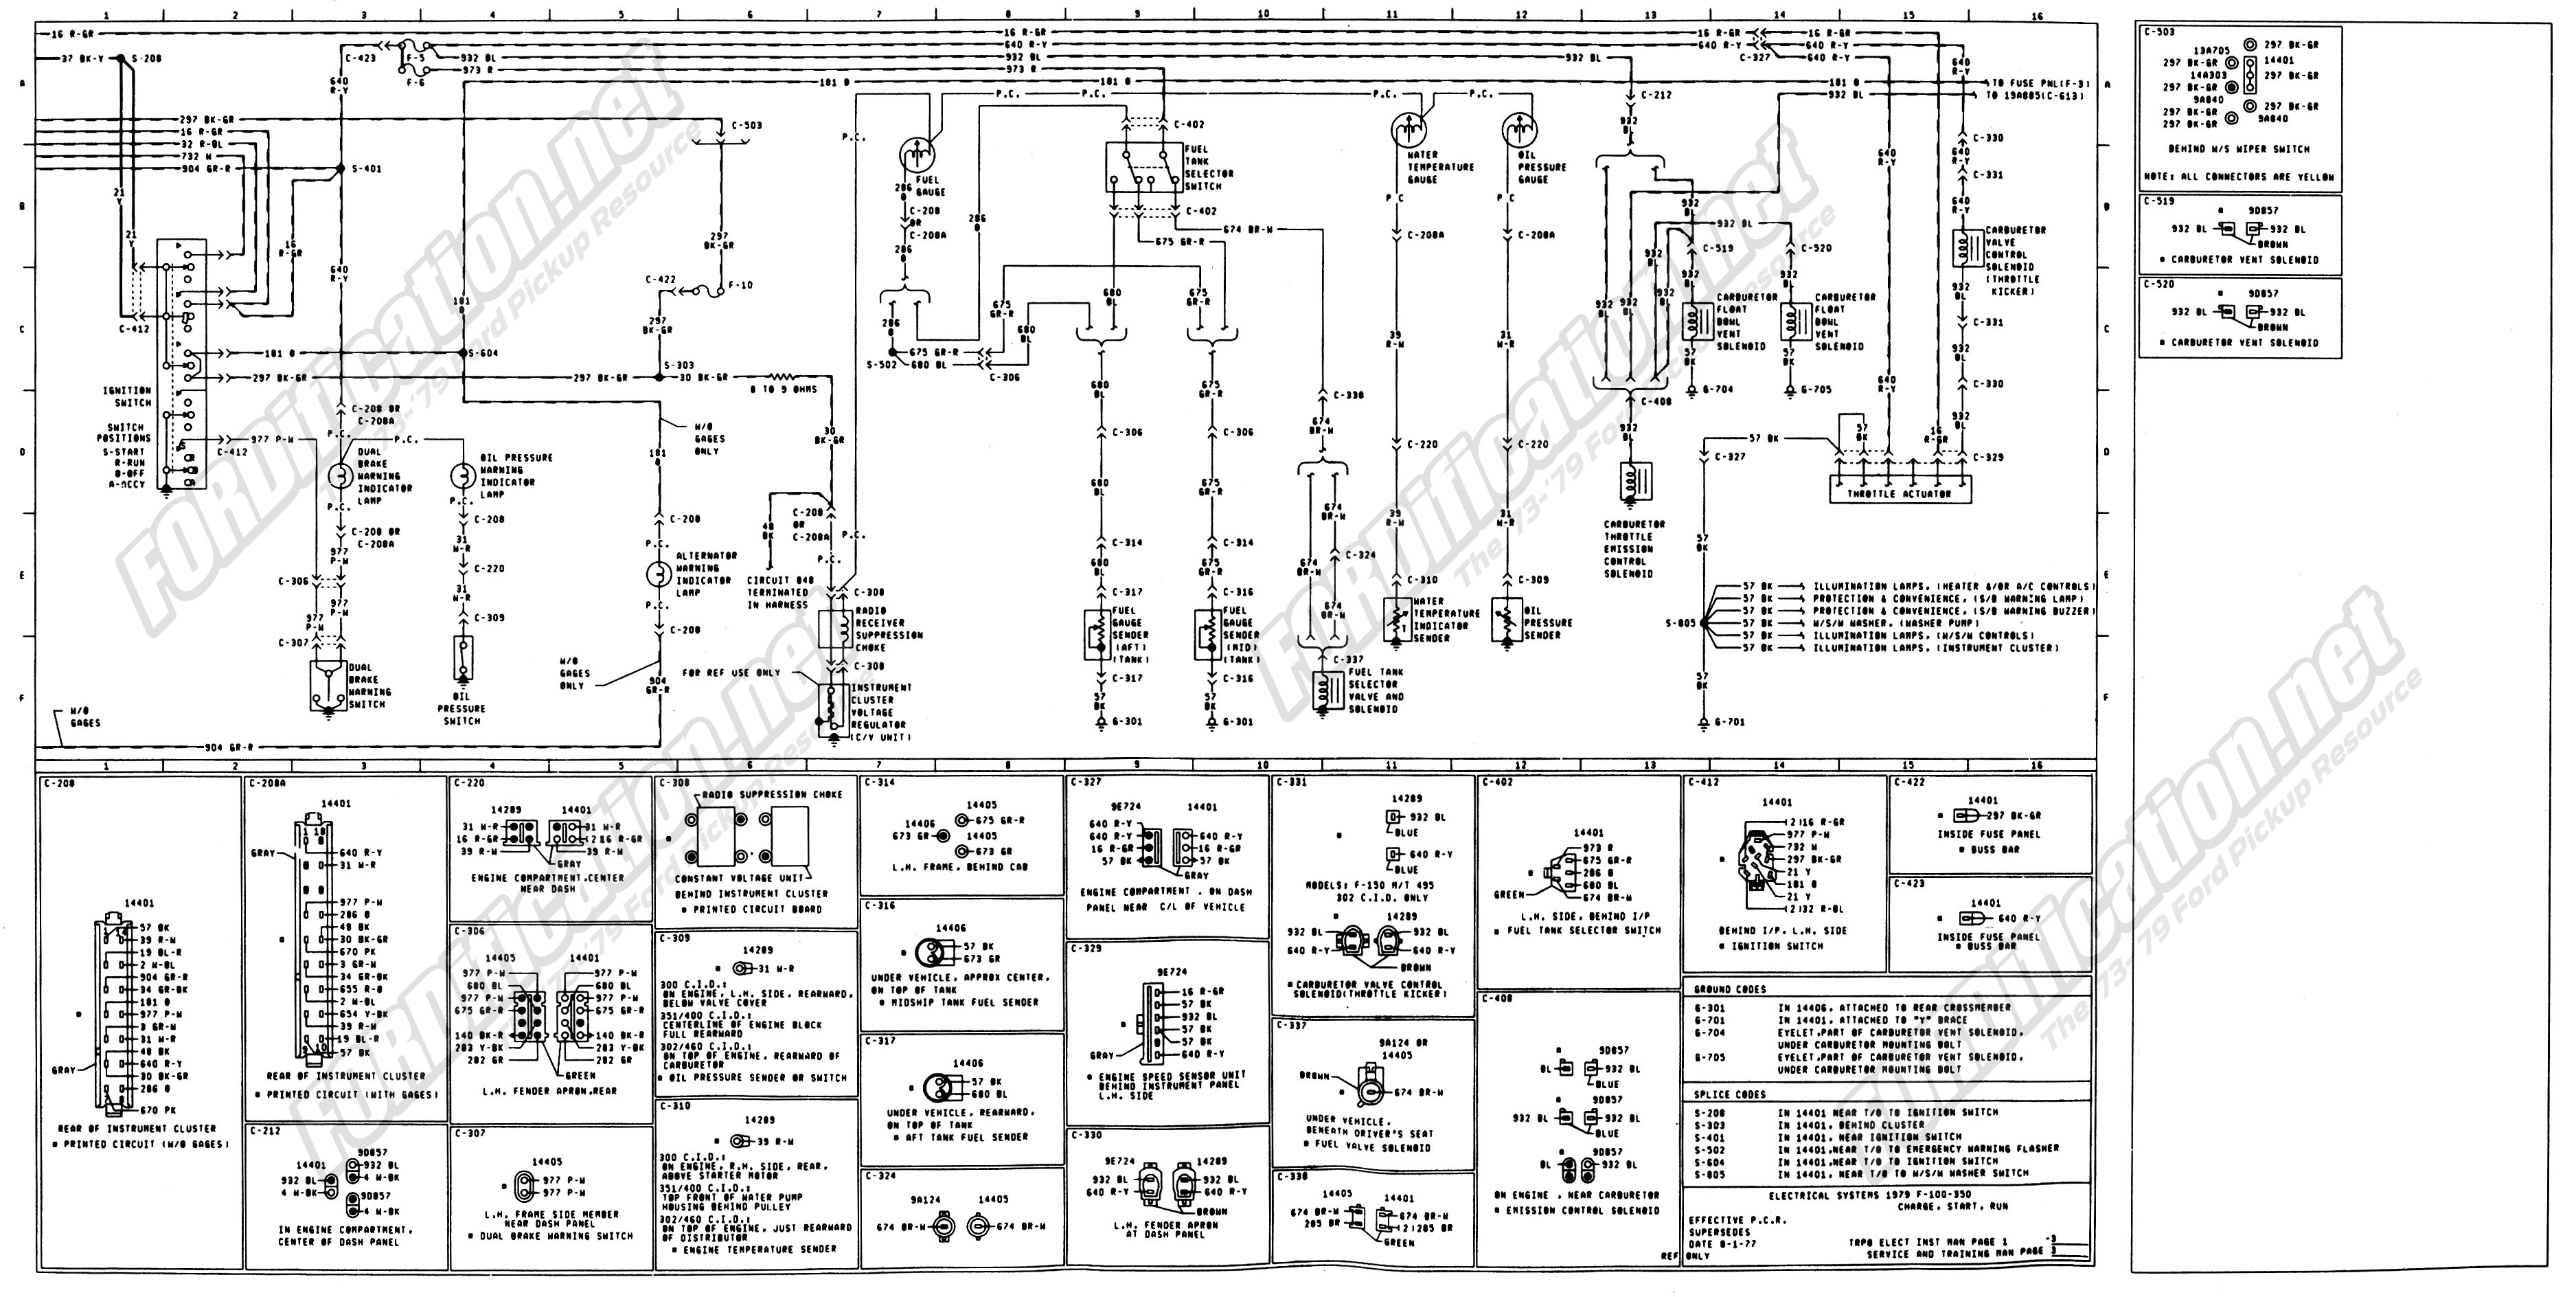 1974 ford wiring diagram wiring diagram data schema1974 ford truck wiring  diagram wiring diagram database 1974